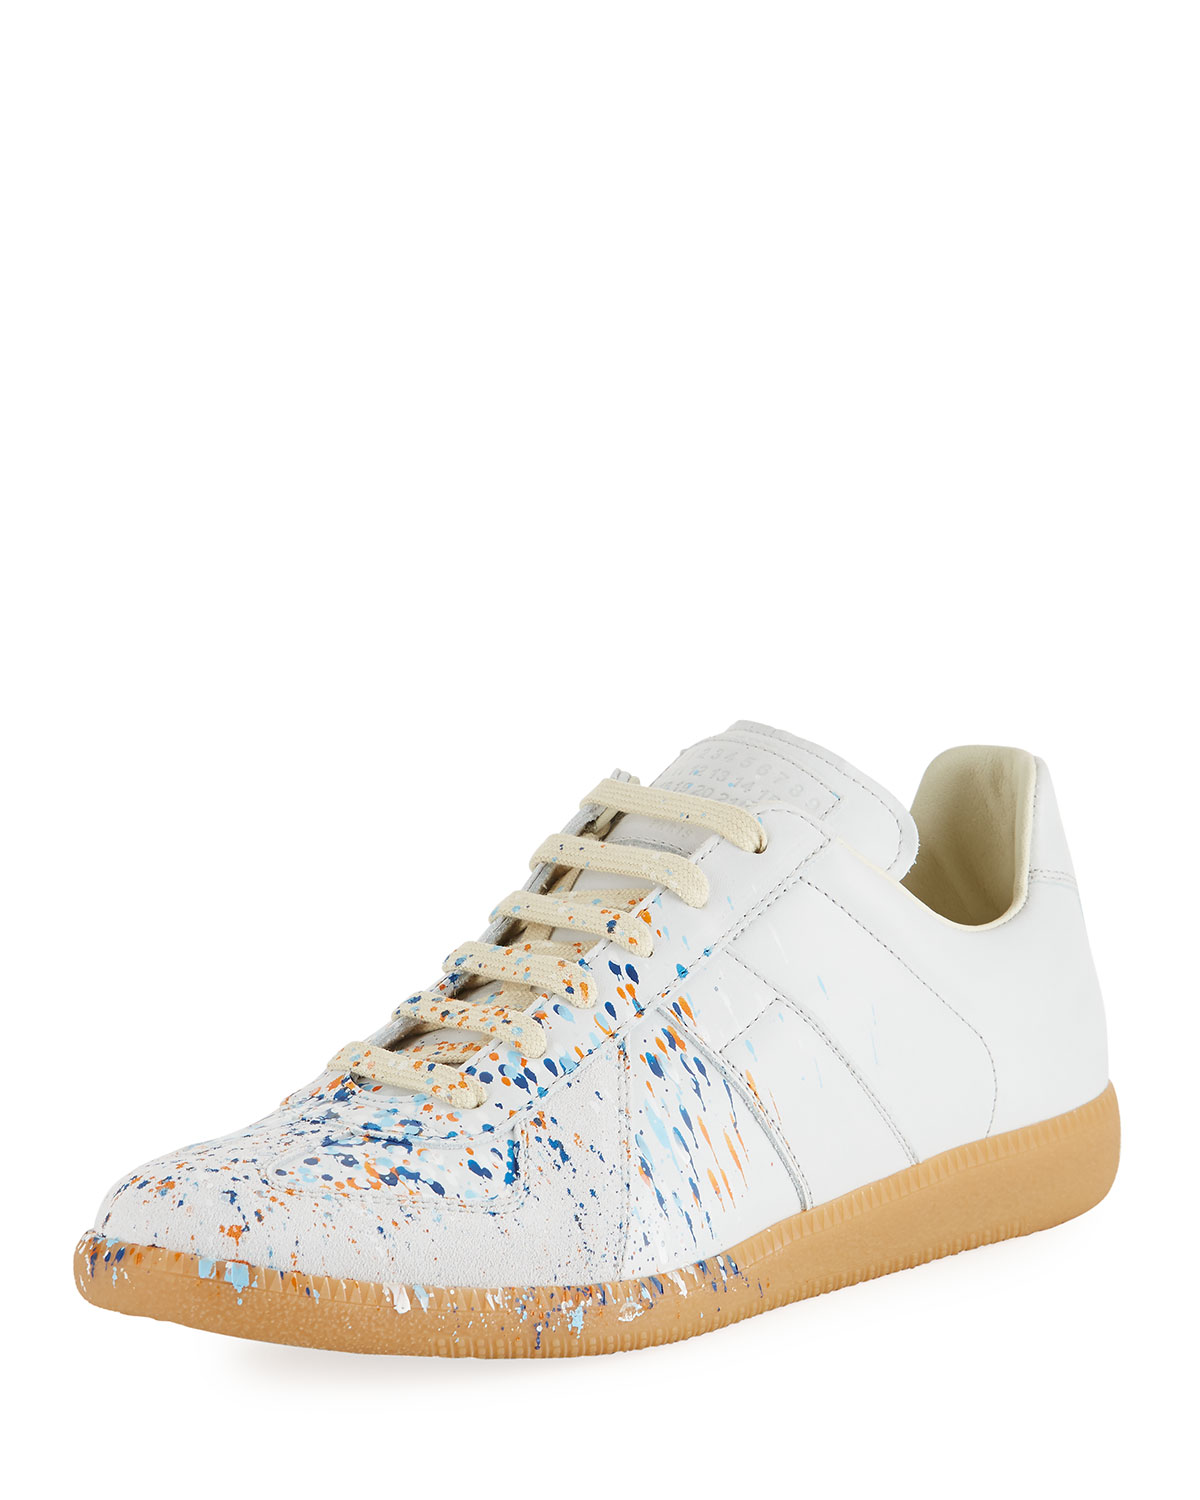 Mens Paint-Coated Canvas & Suede Sneakers Maison Martin Margiela